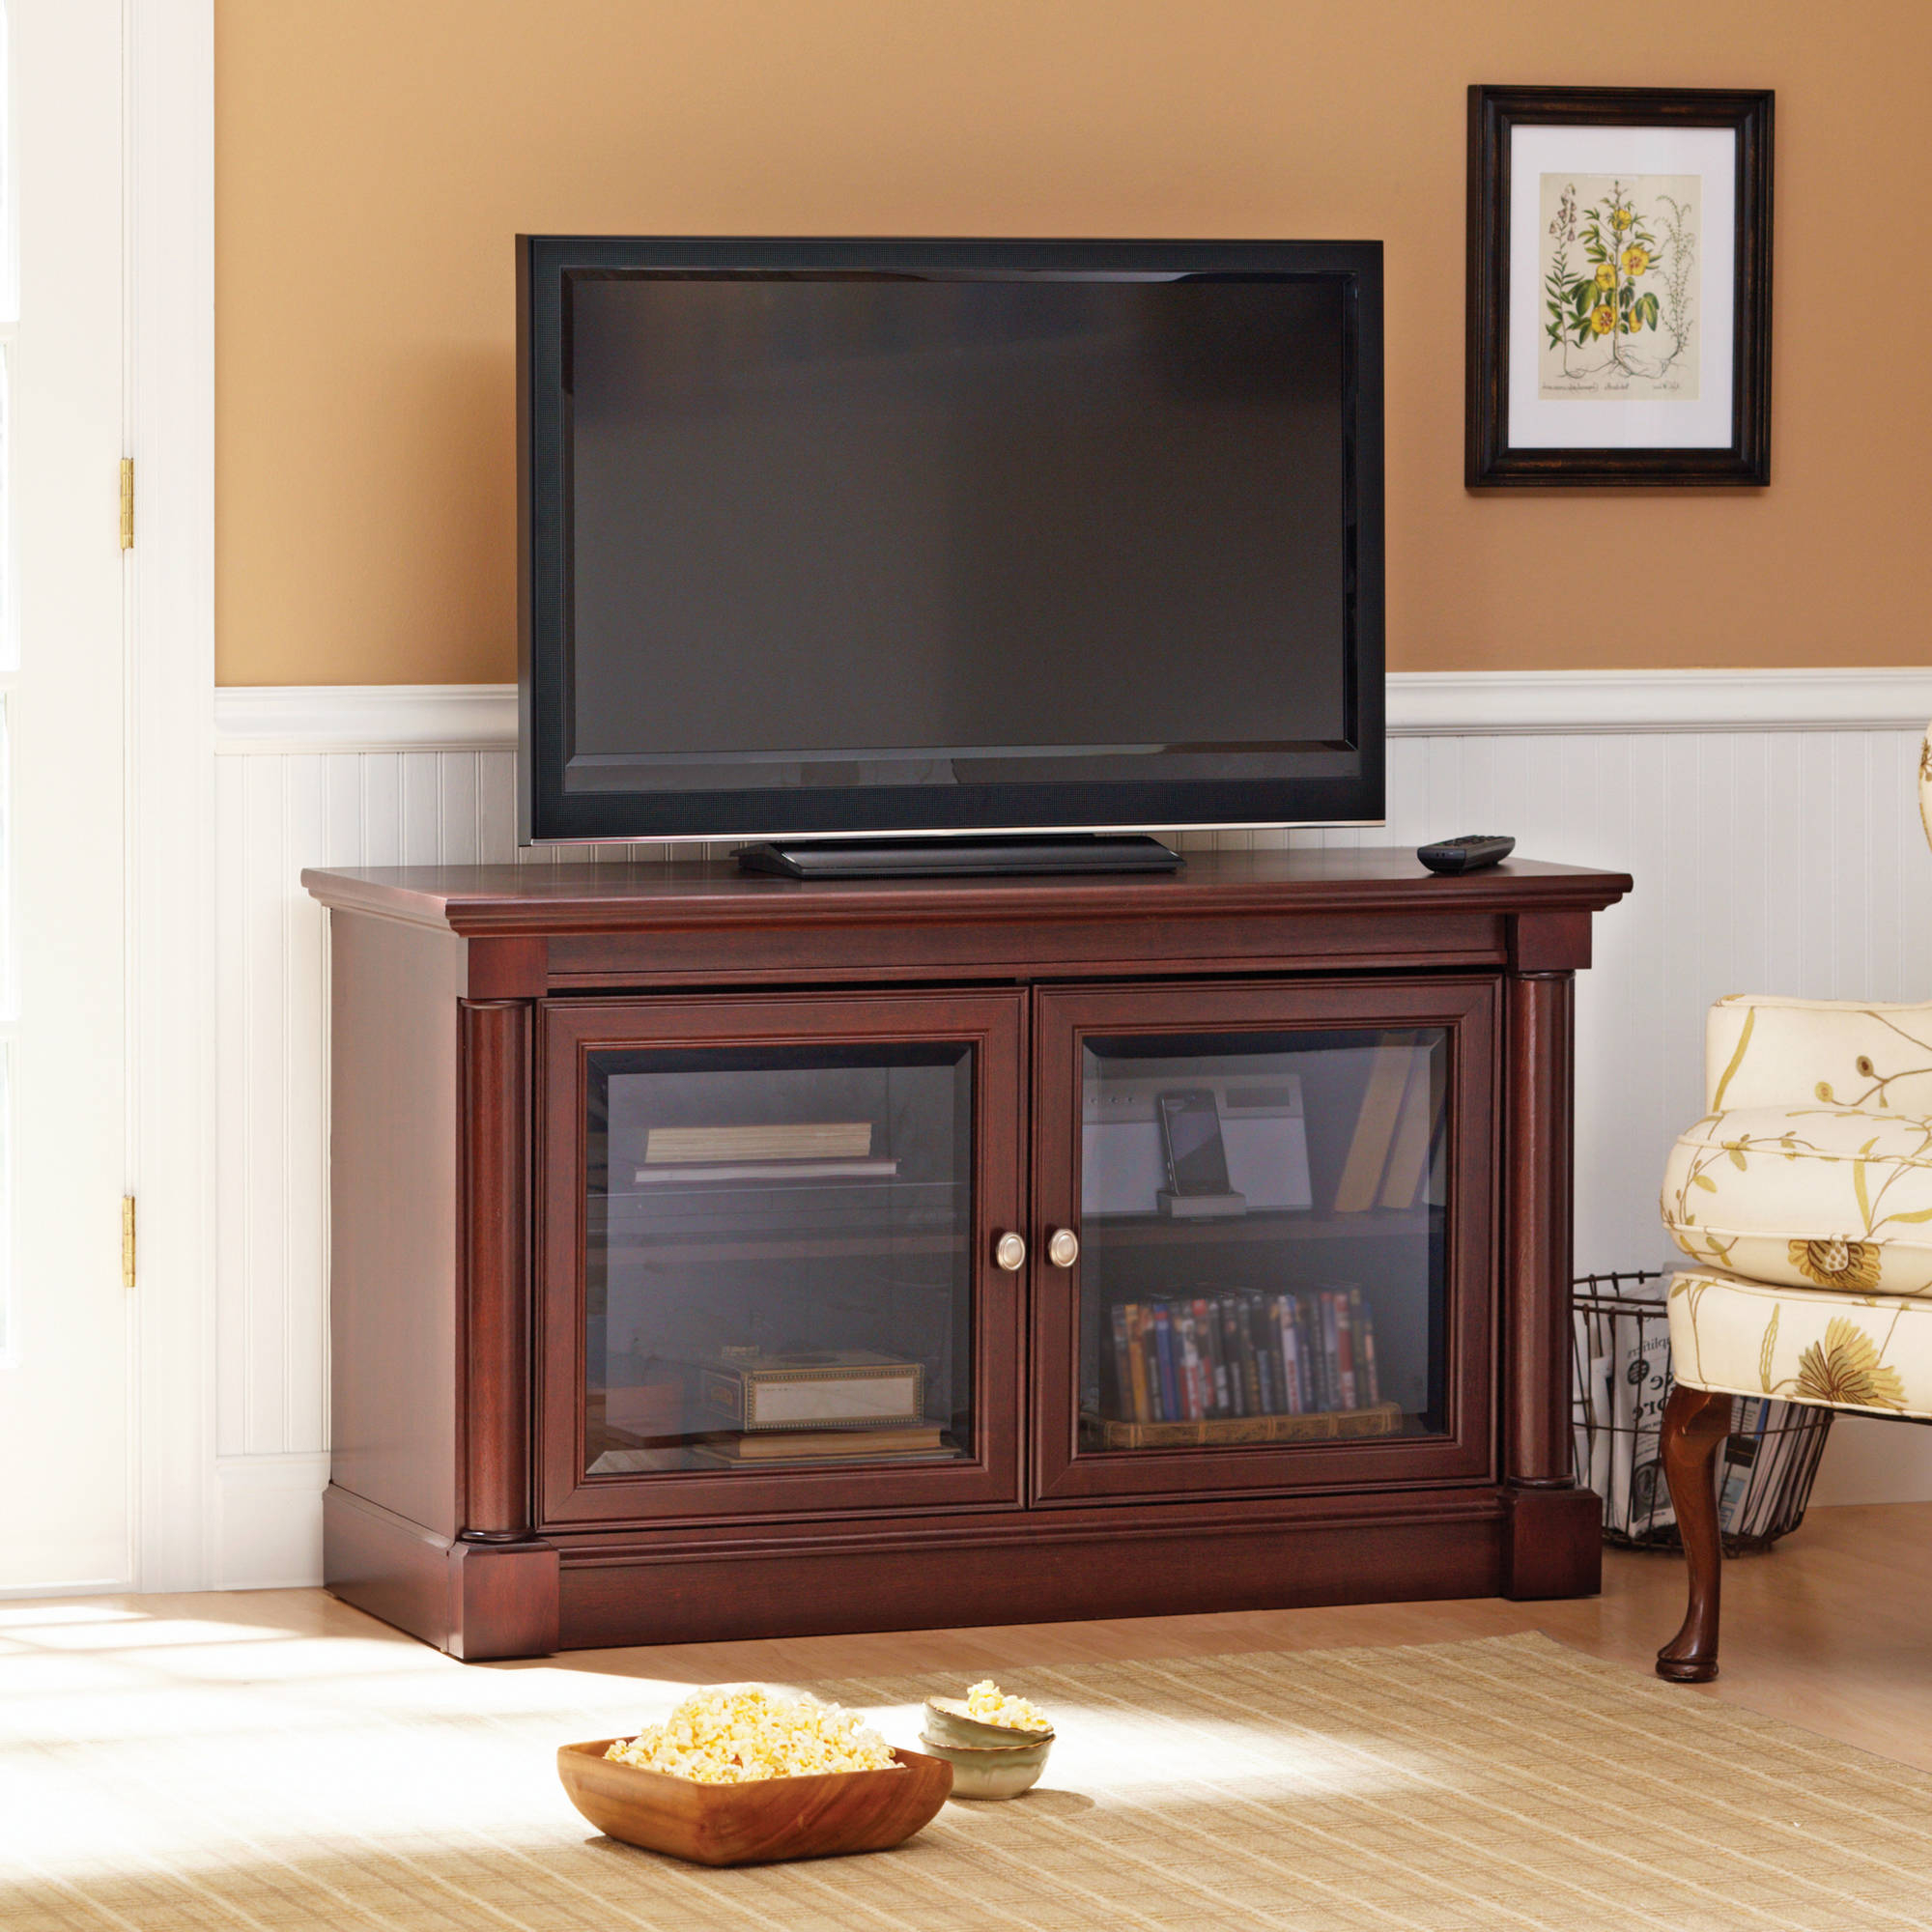 2017 Better Homes & Gardens Ashwood Road Tv Stand For Tvs Up To 47 Inside Cherry Wood Tv Stands (View 1 of 20)